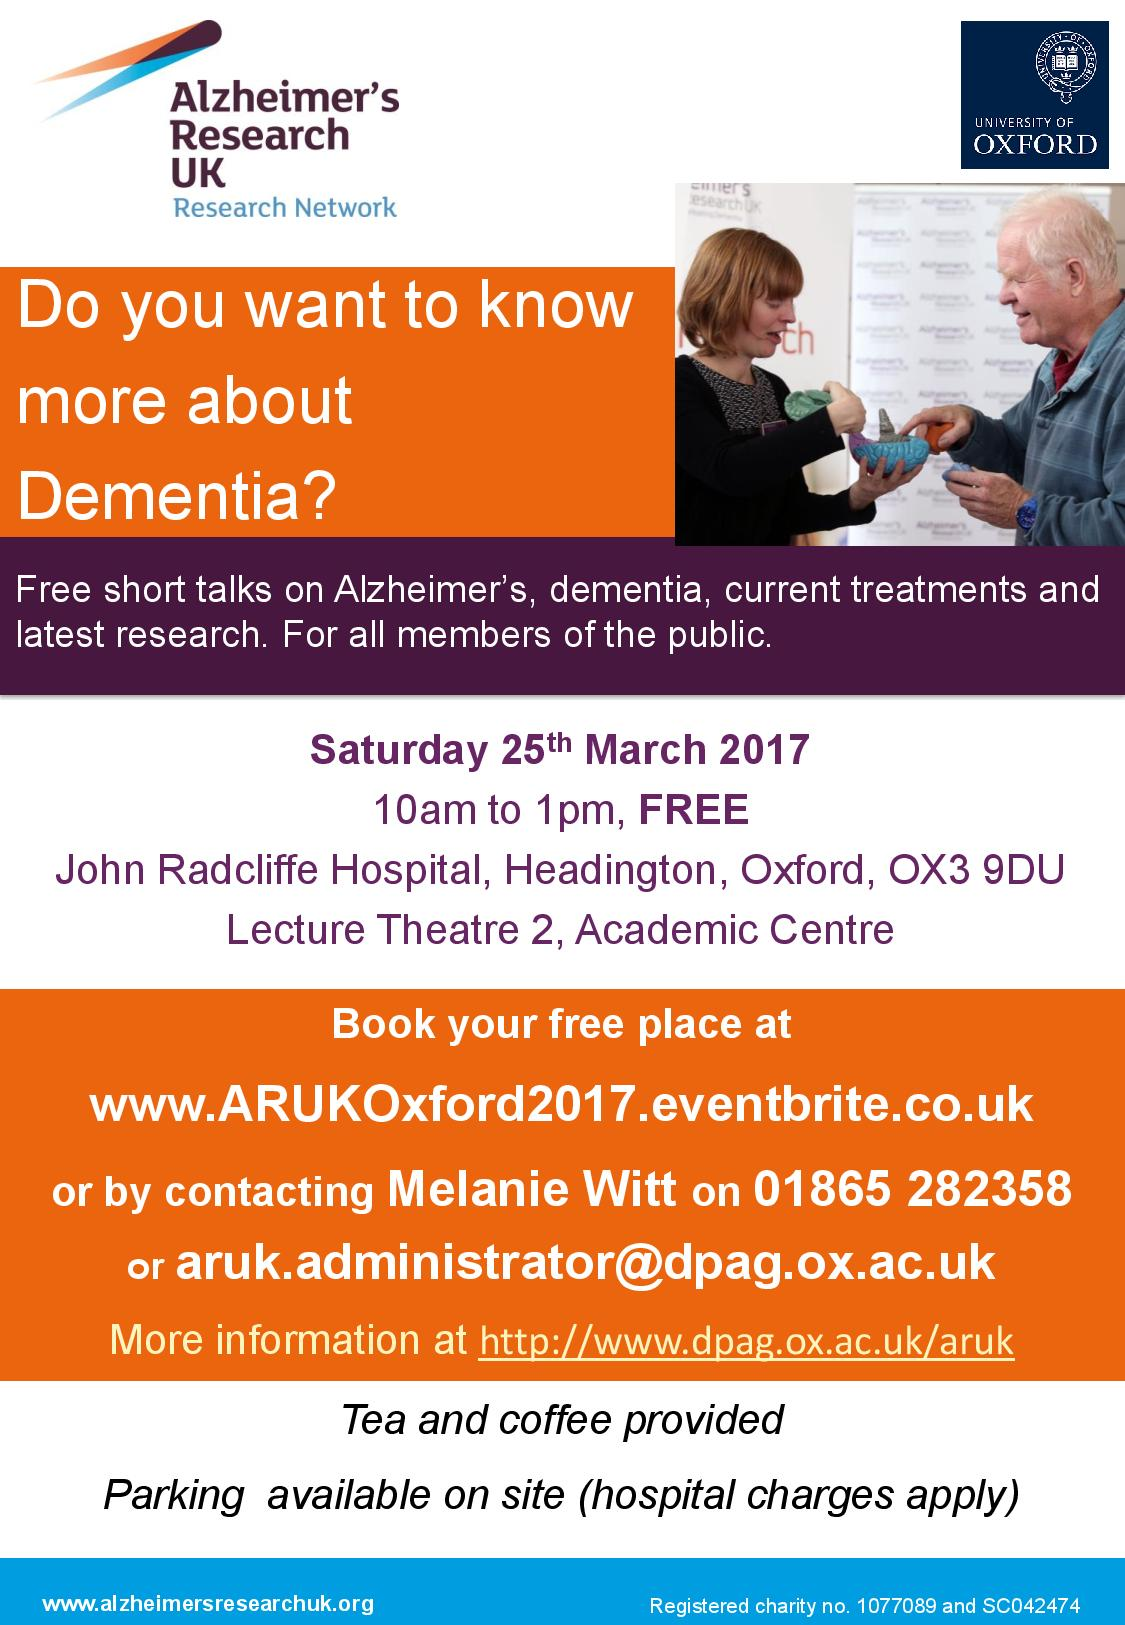 ARUK Oxford Dementia Information Morning